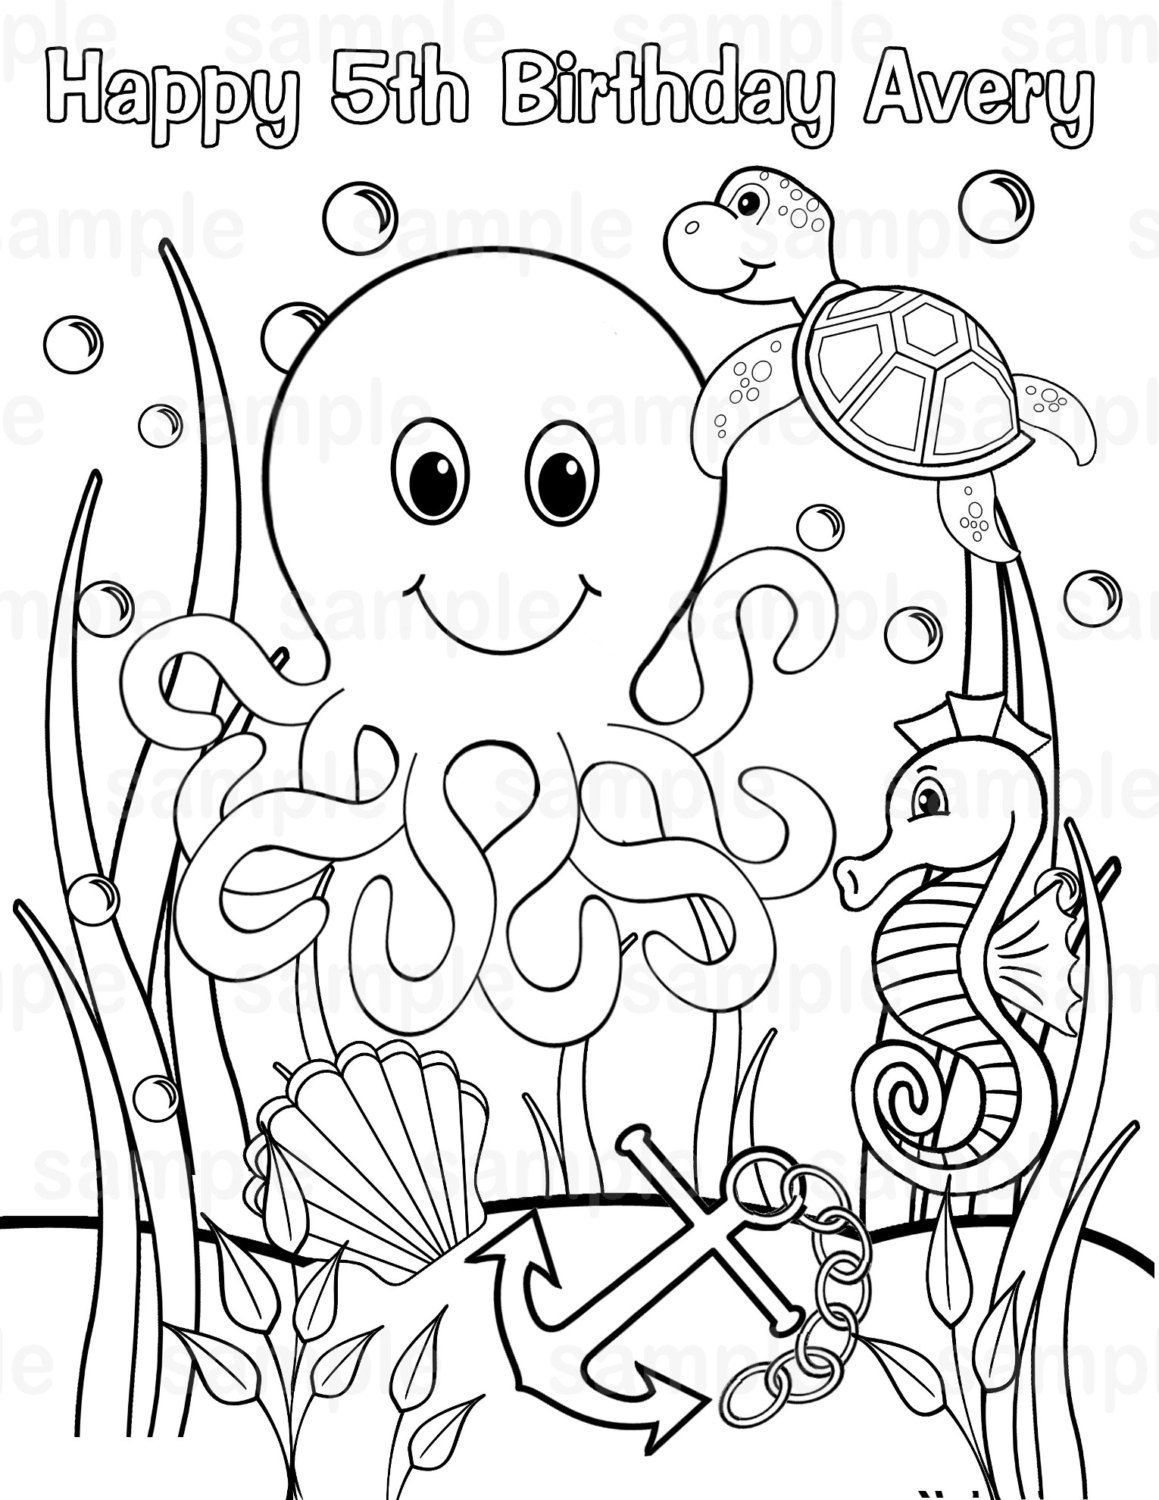 Personalized Printable Under The Sea Birthday By Sugarpiestudio Animal Coloring Pages Ocean Coloring Pages Coloring Pictures Of Animals